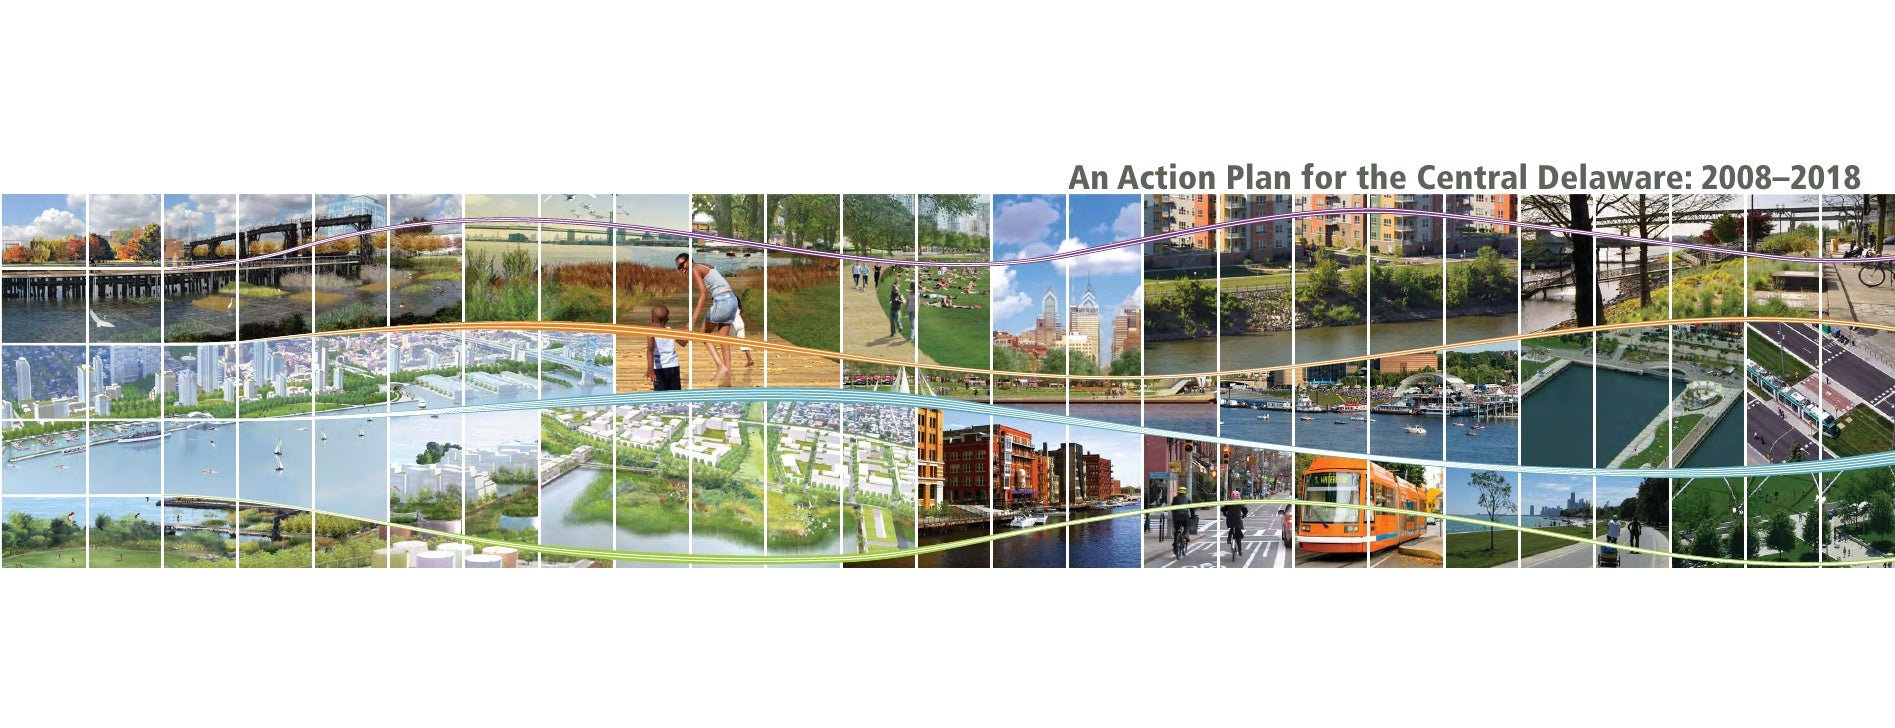 An Action Plan for the Central Delaware: 2008–2018